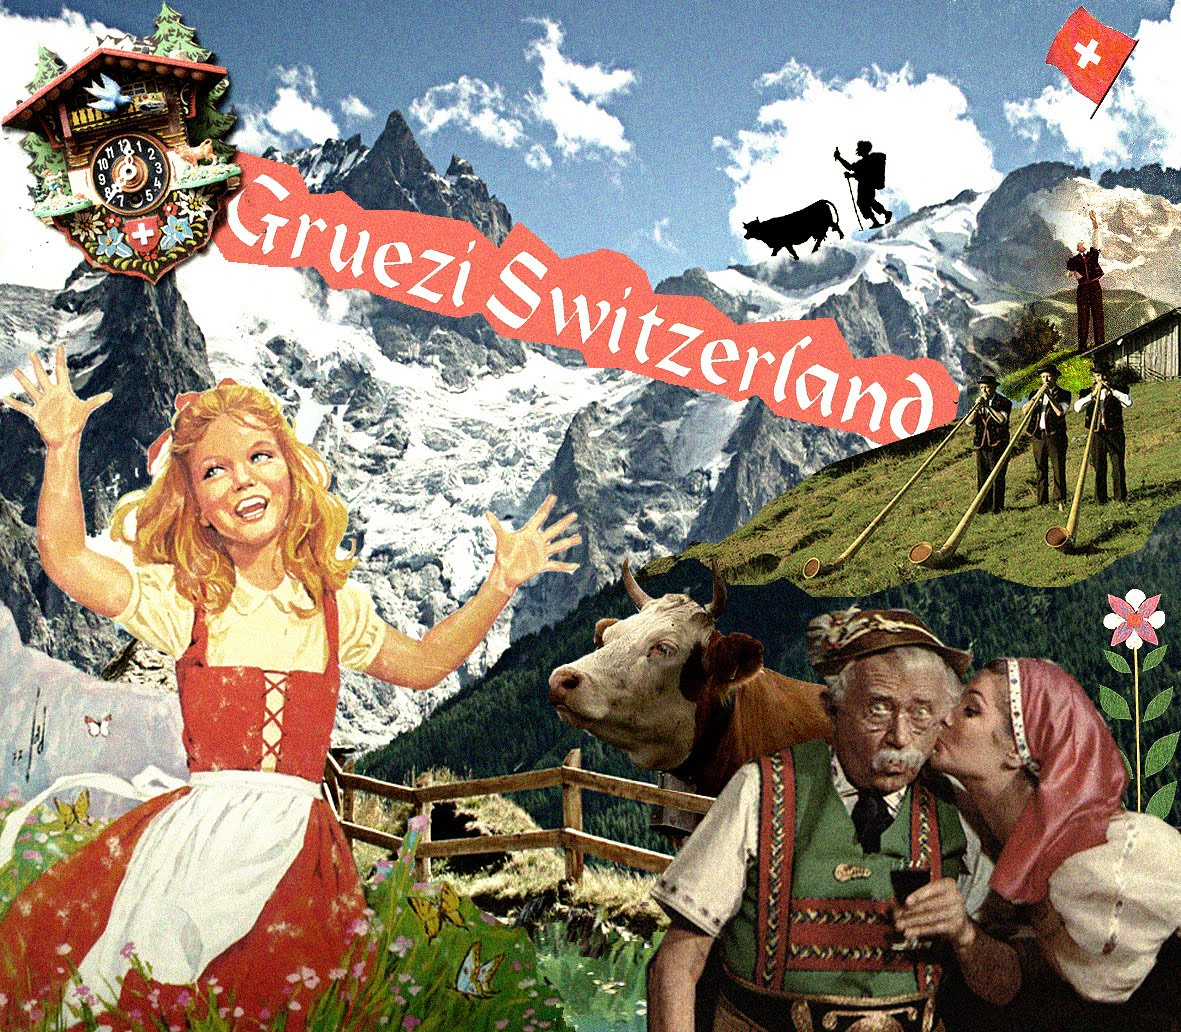 Swiss dating/relationship etiquette